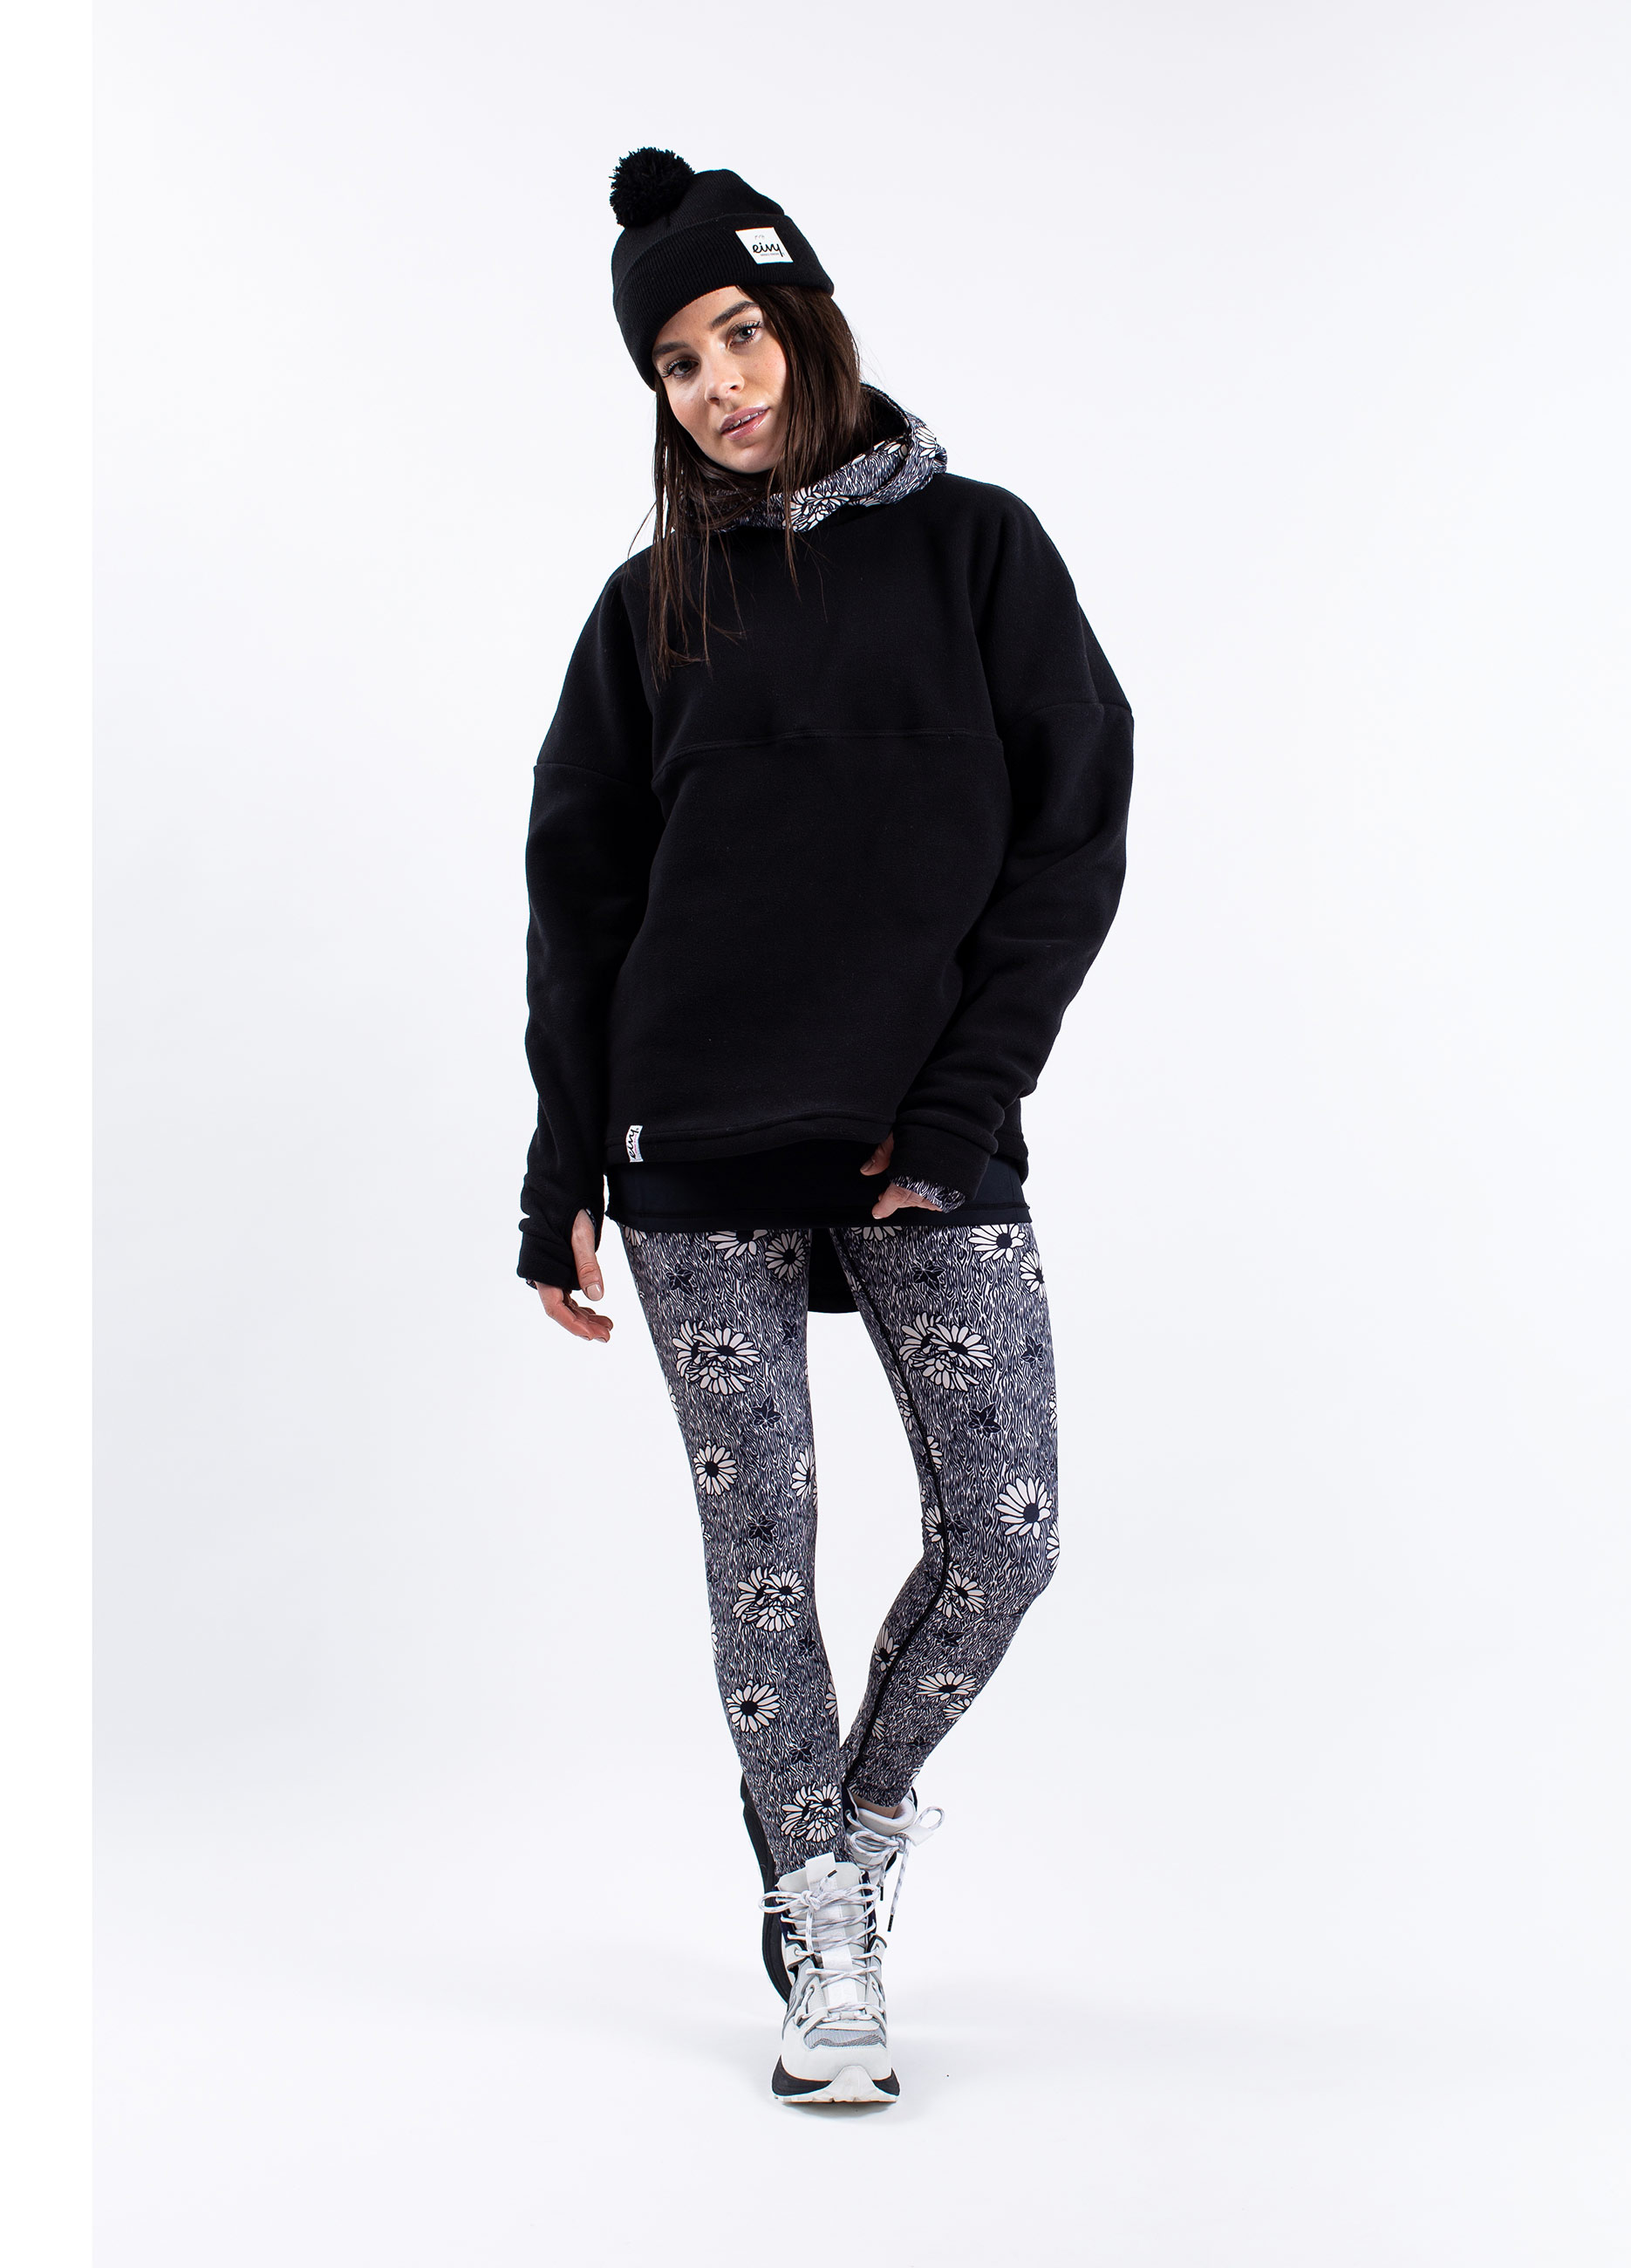 slider-image-https://www.eivyclothing.com/image/3687/Mix_and_match_13.jpg